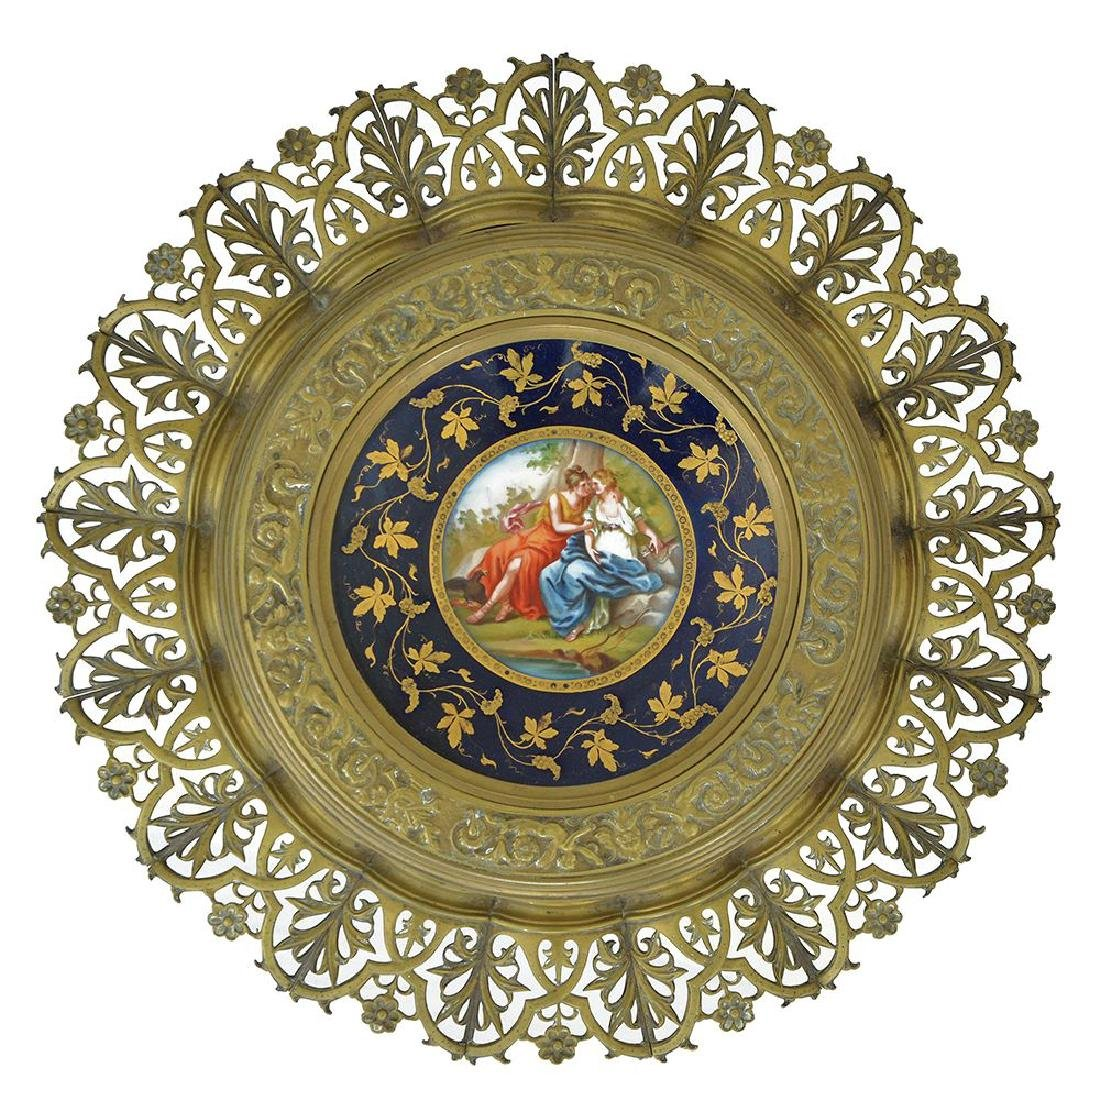 A BRASS TAZZA MOUNTED WITH A PORCELAIN PLATE